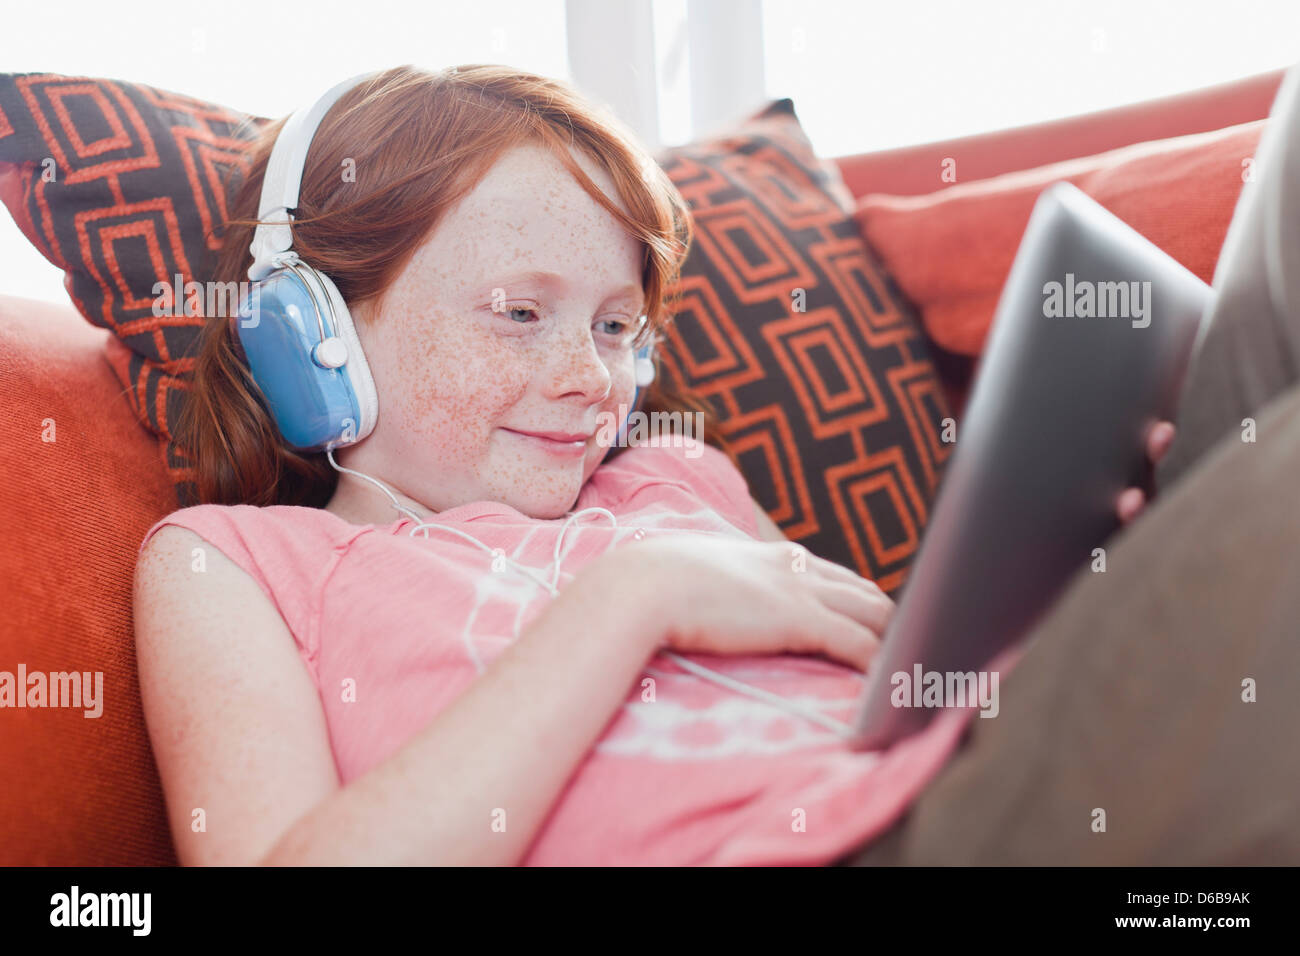 Girl in headphones using tablet computer Photo Stock